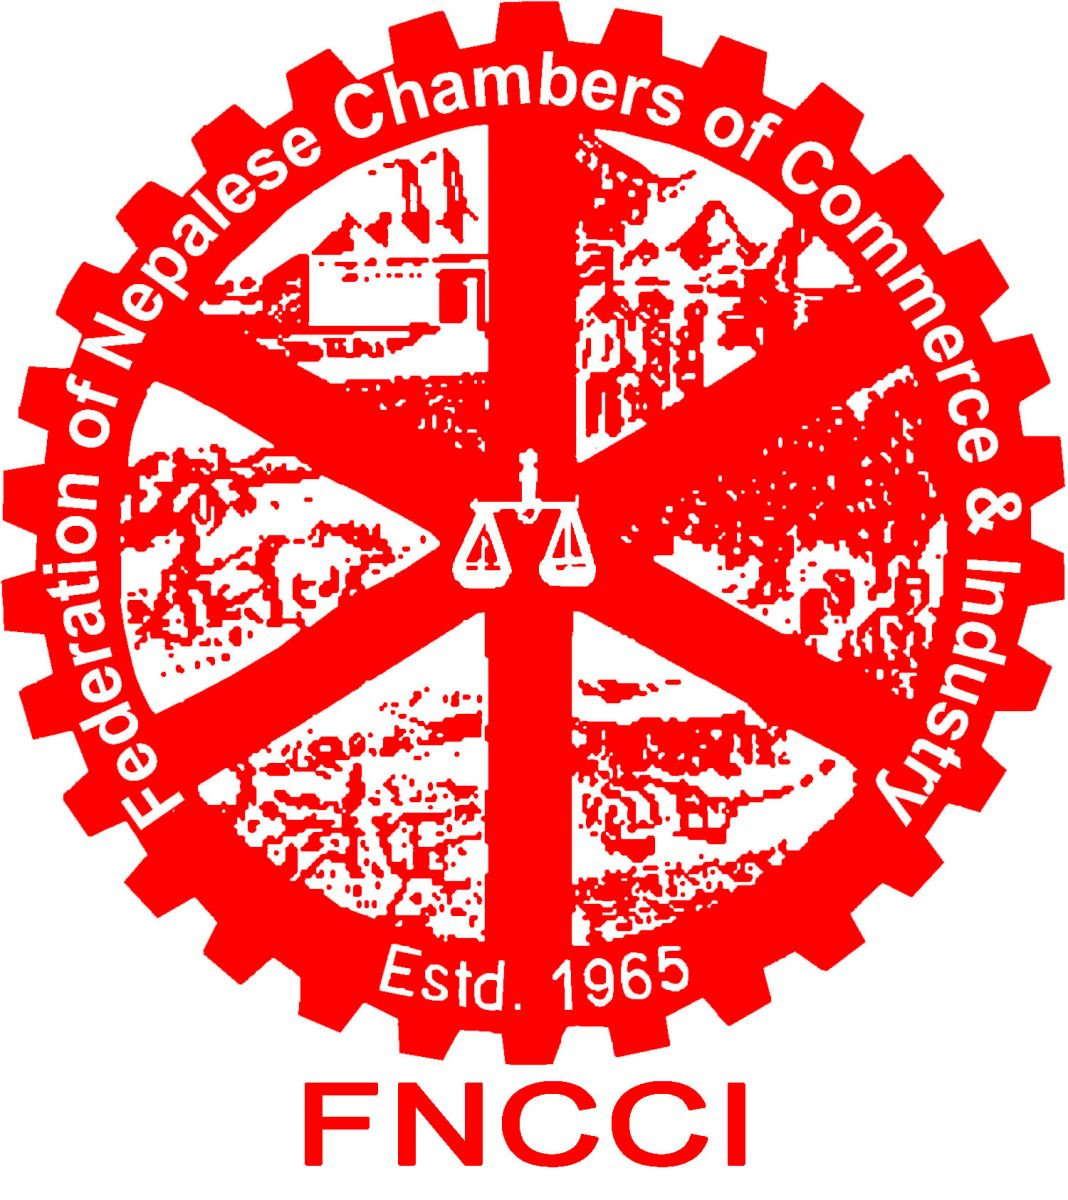 Federation of Nepalese Chambers of Commerce and Industry